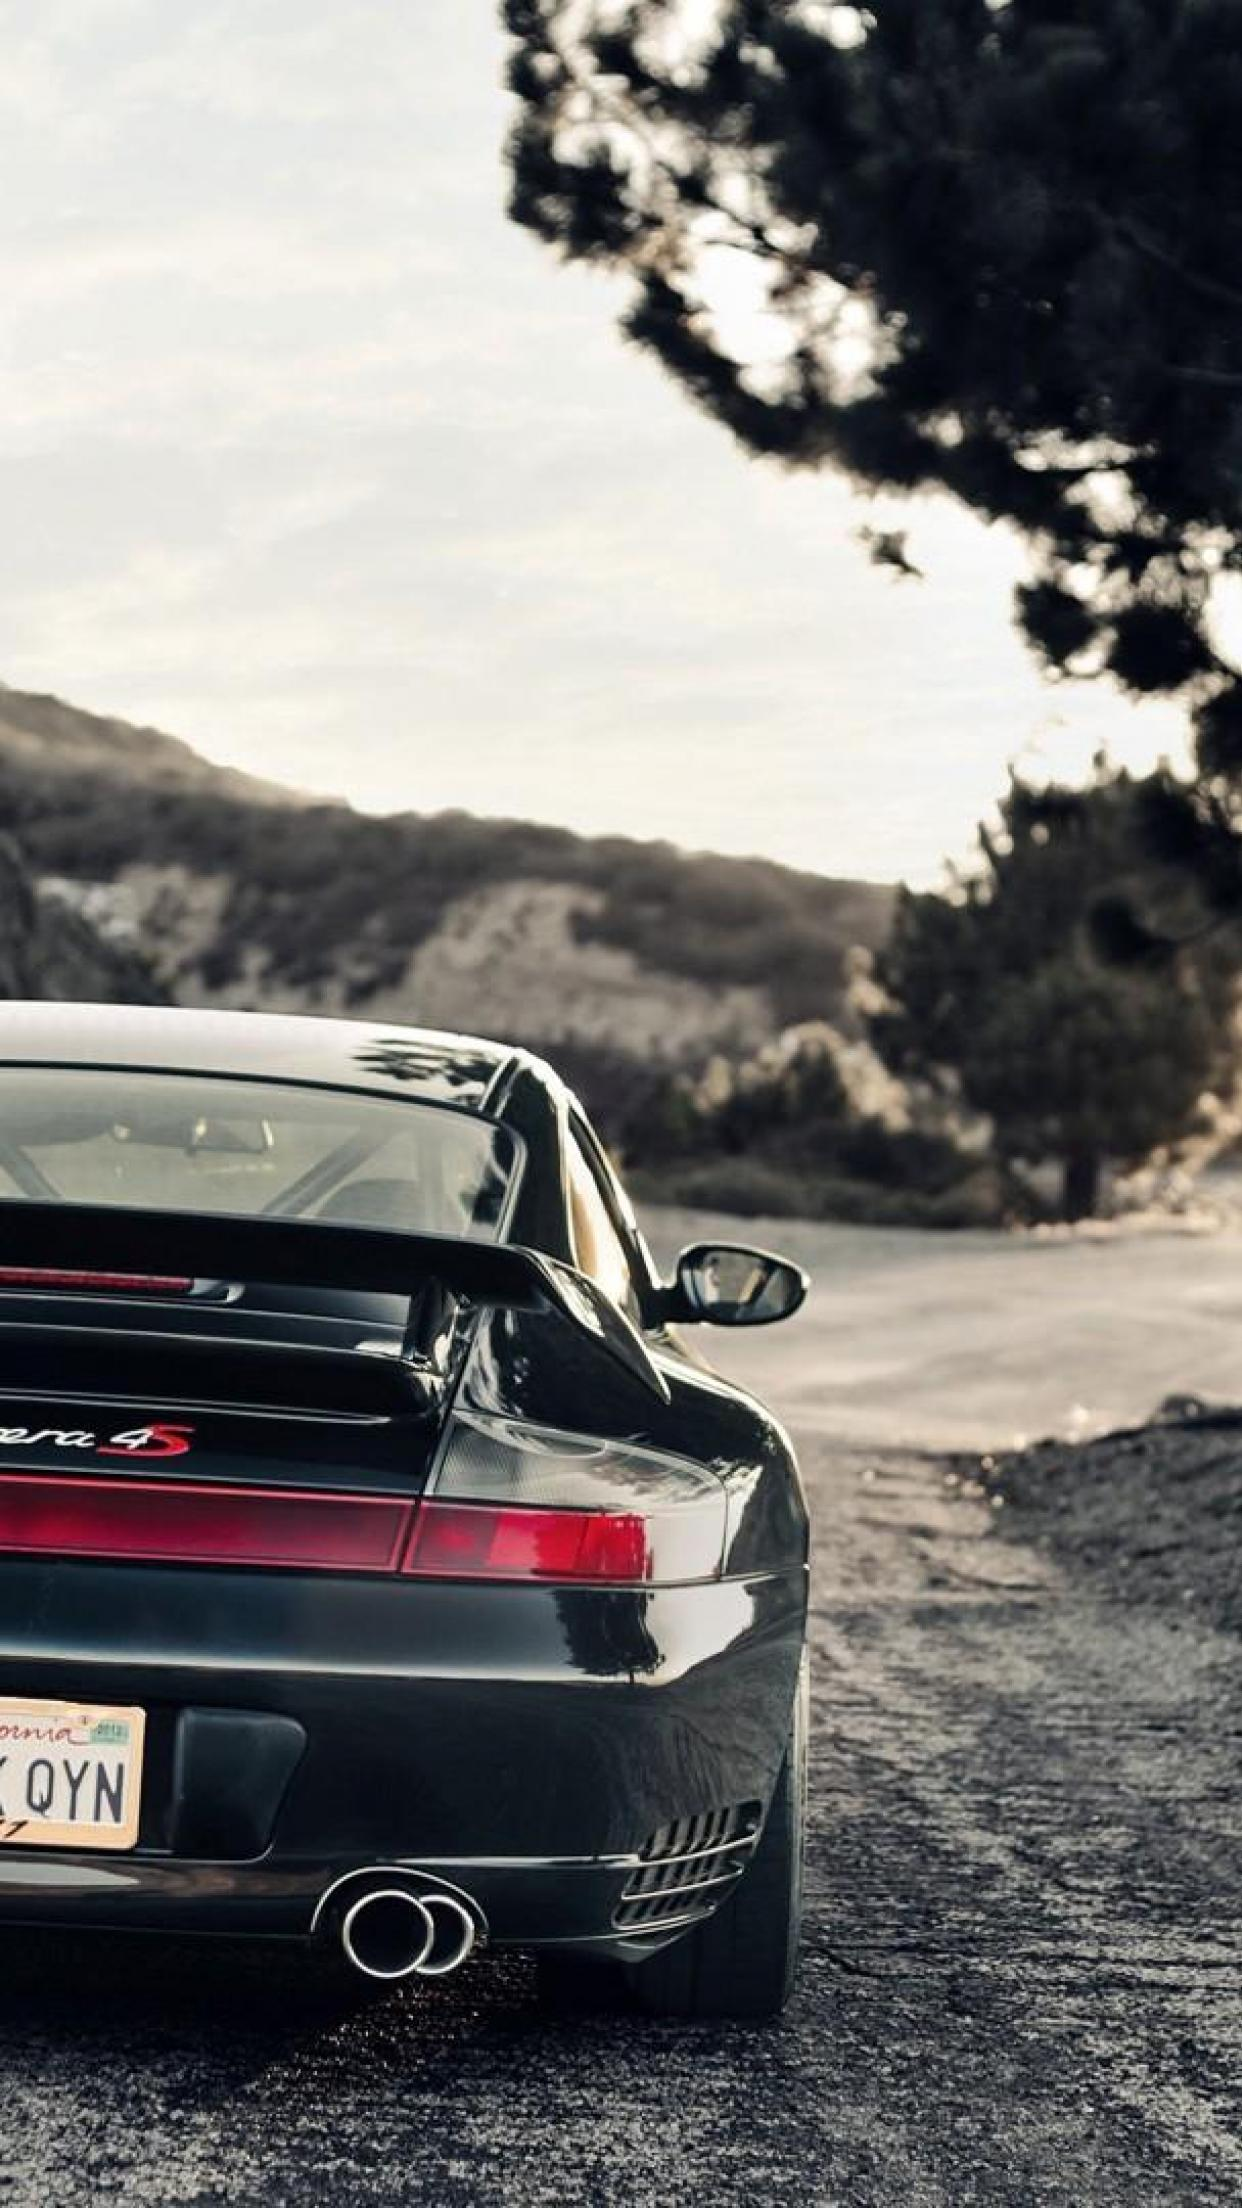 Porsche 911 Wallpaper For Iphone X 8 7 6 Free